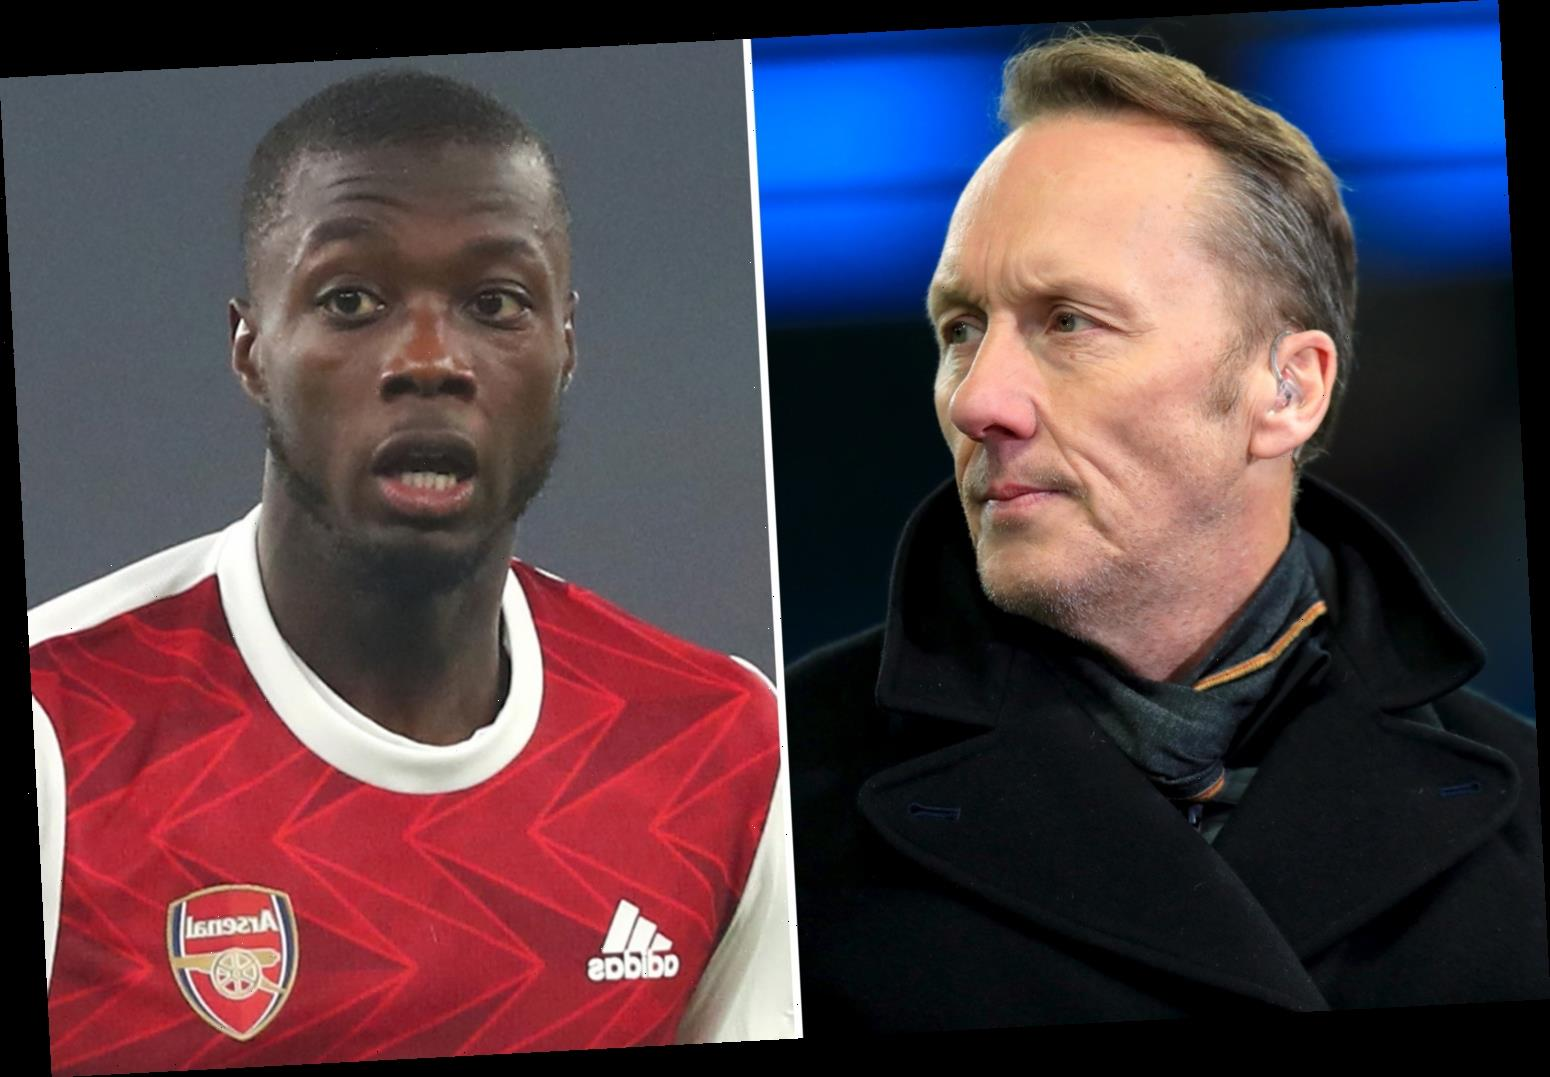 Arsenal record signing Nicolas Pepe told 'play better then' by Lee Dixon after voicing concerns over playing time